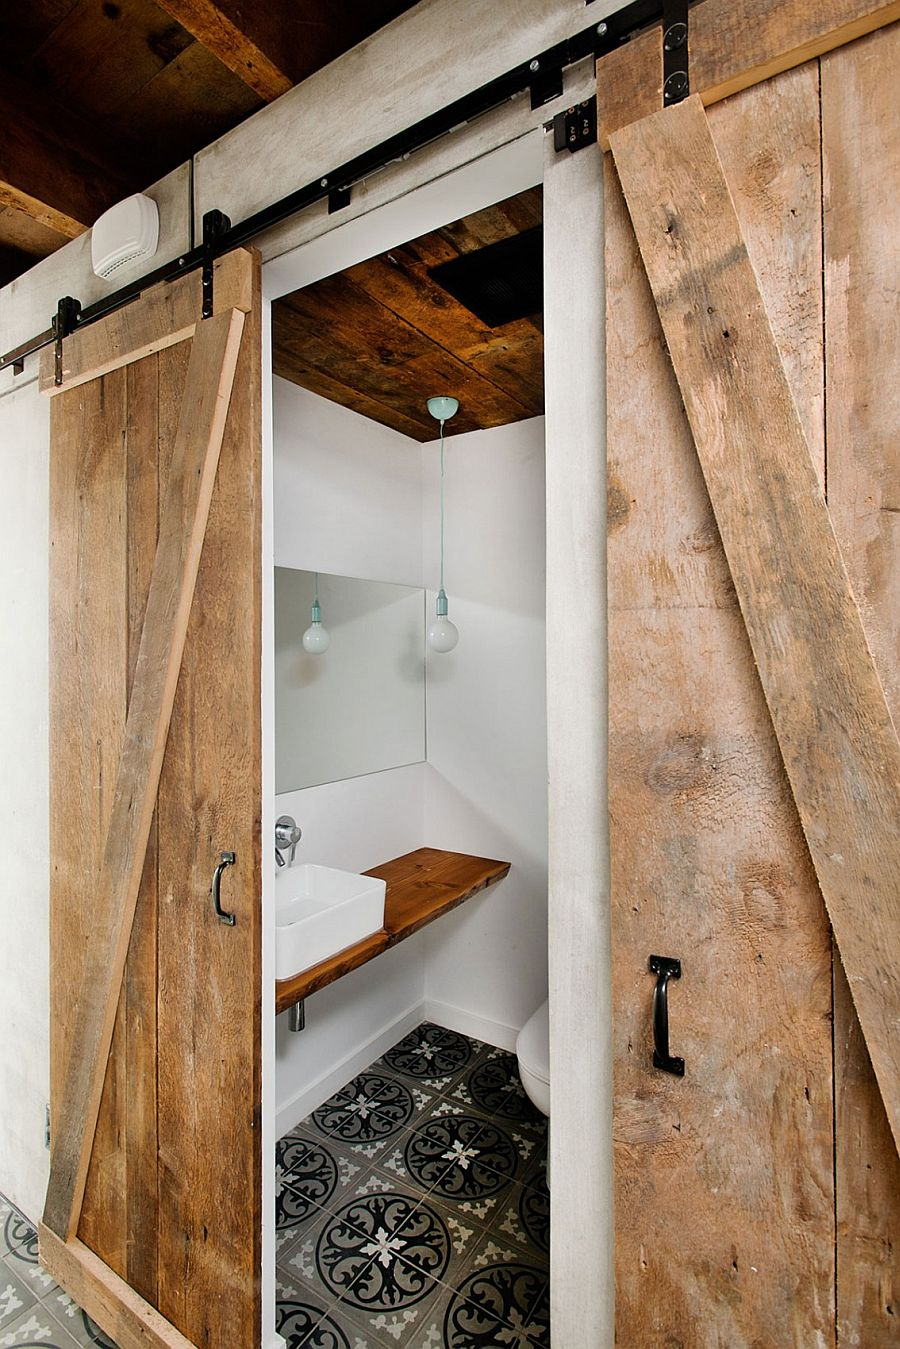 Barn style doors for the modern bath